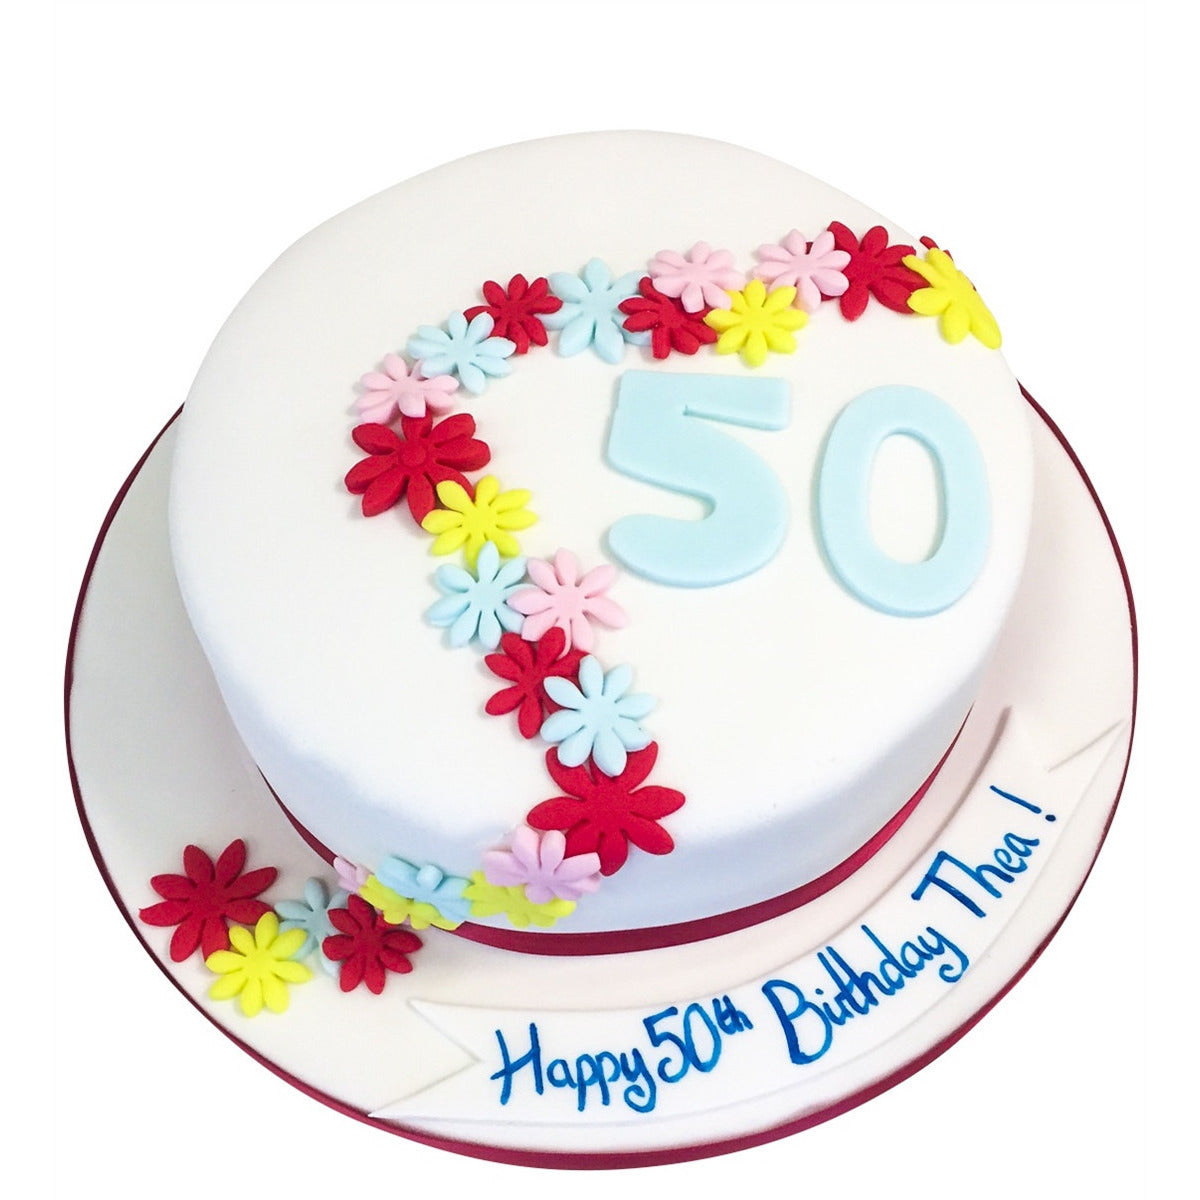 Outstanding 50Th Birthday Cake Buy Online Free Uk Delivery New Cakes Funny Birthday Cards Online Alyptdamsfinfo